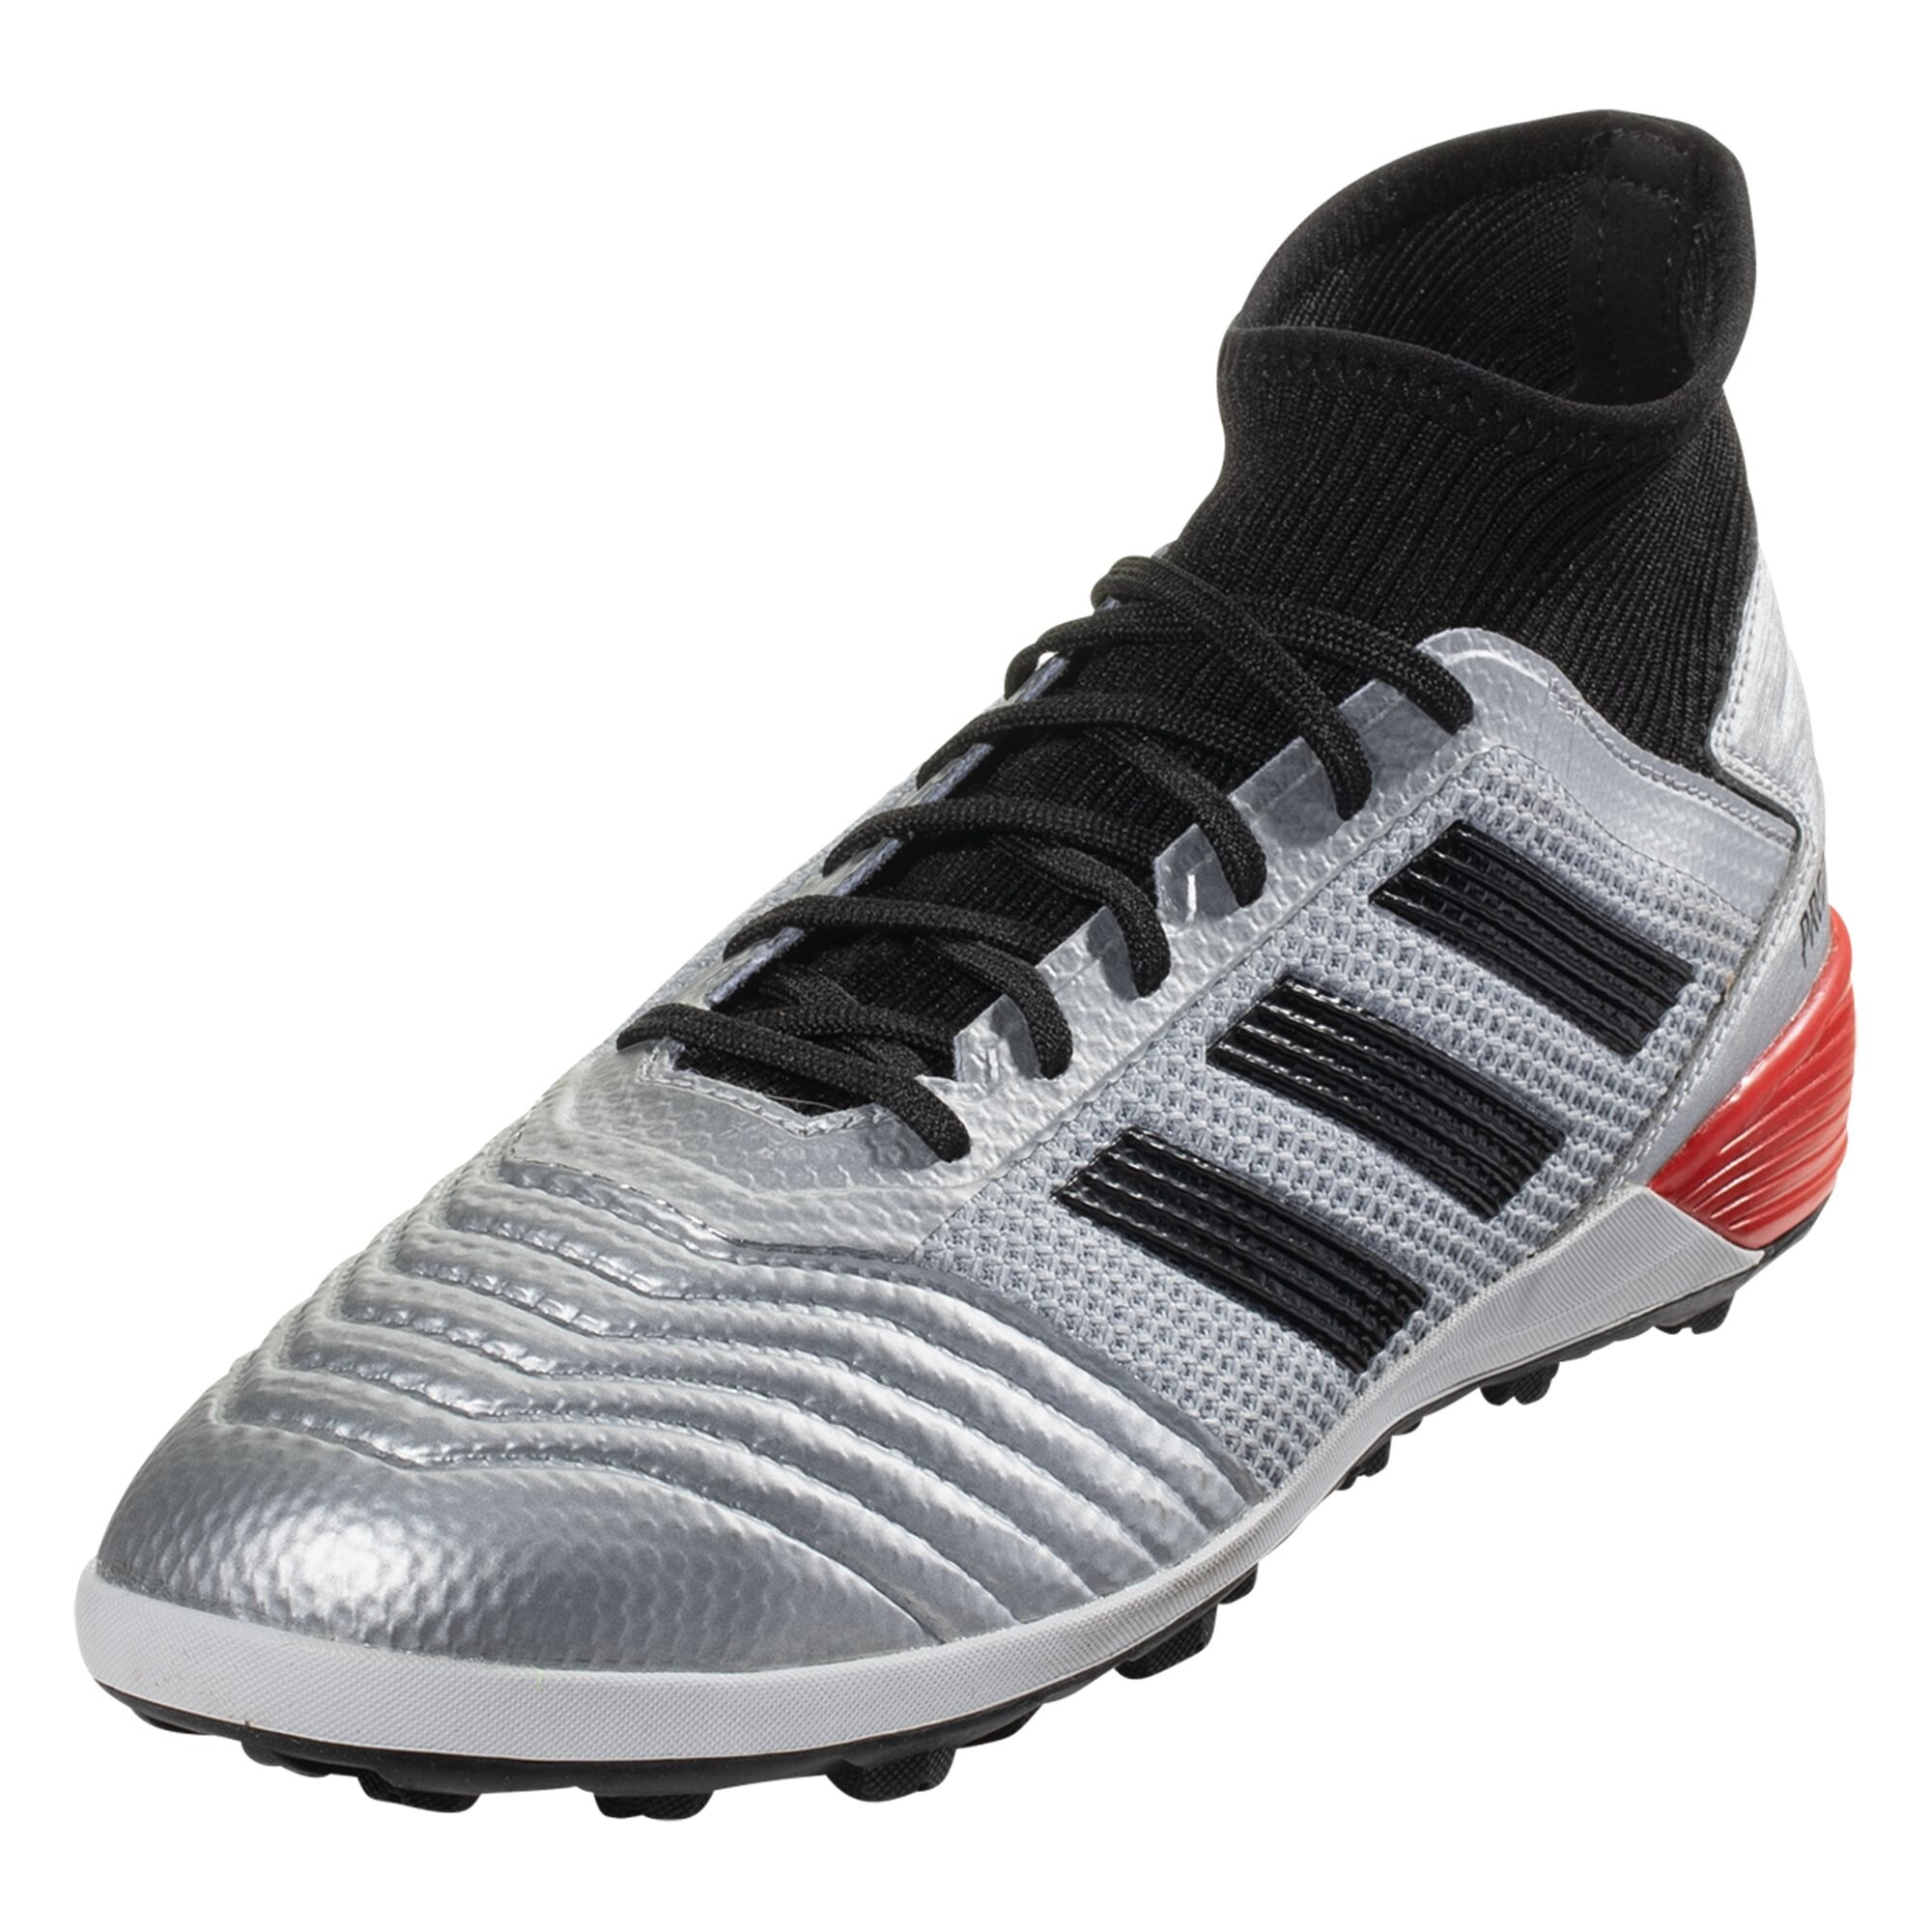 adidas Predator Tango 19.3 TF Artificial Turf Soccer Shoe - Metallic Silver / Black / Hi-Res Red